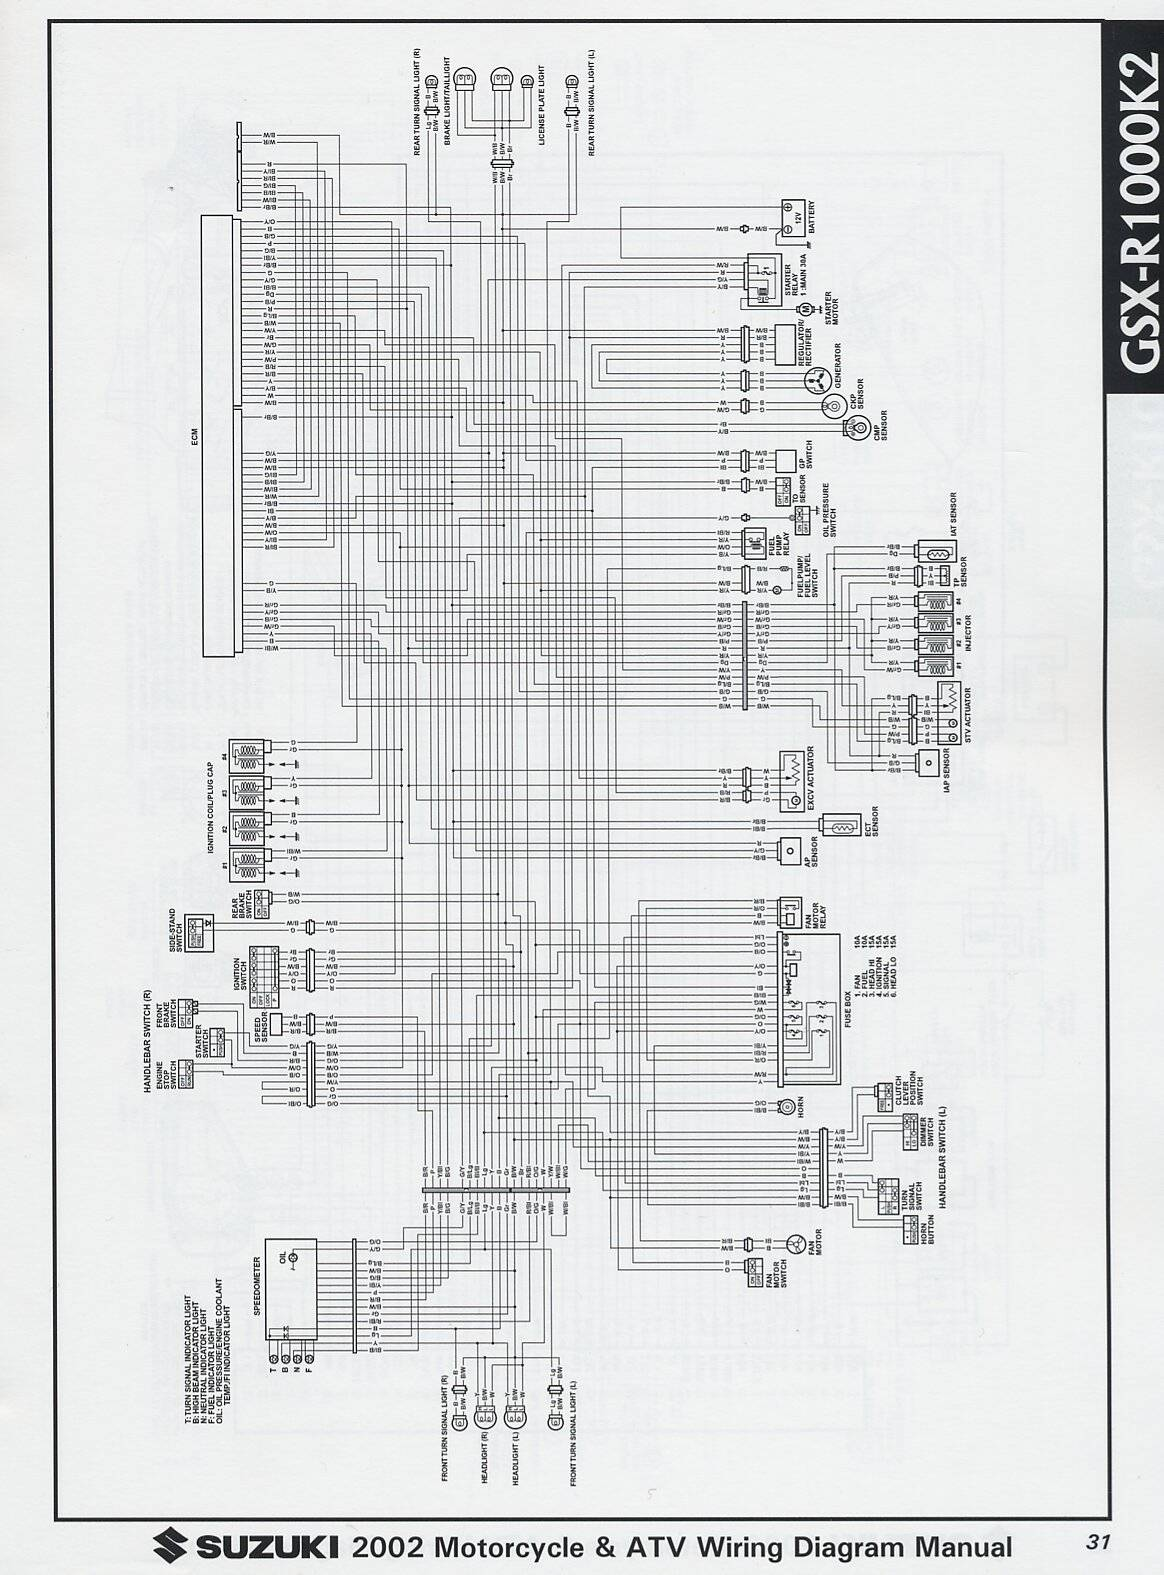 mitsubishi magna engine wiring diagram diagram 98 mirage turn signal wiring schematic nilza net